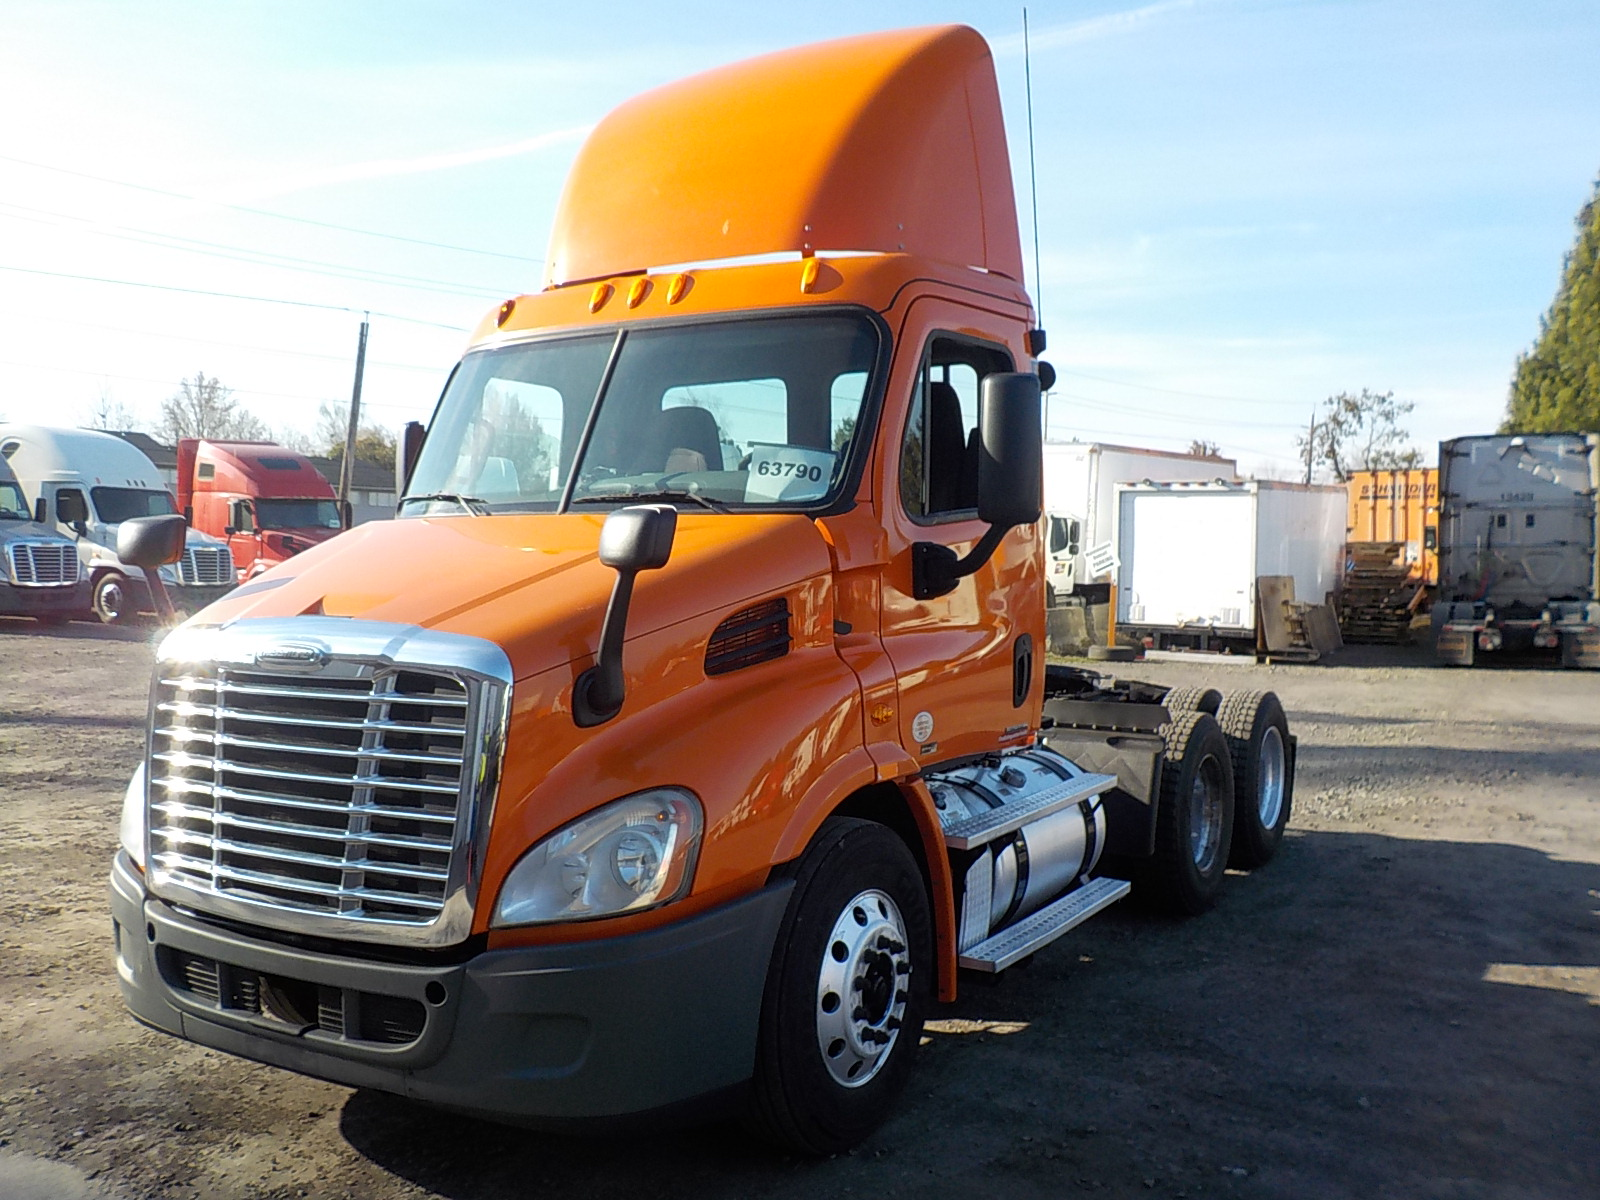 USED 2012 FREIGHTLINER CASCADIA DAYCAB TRUCK #136262